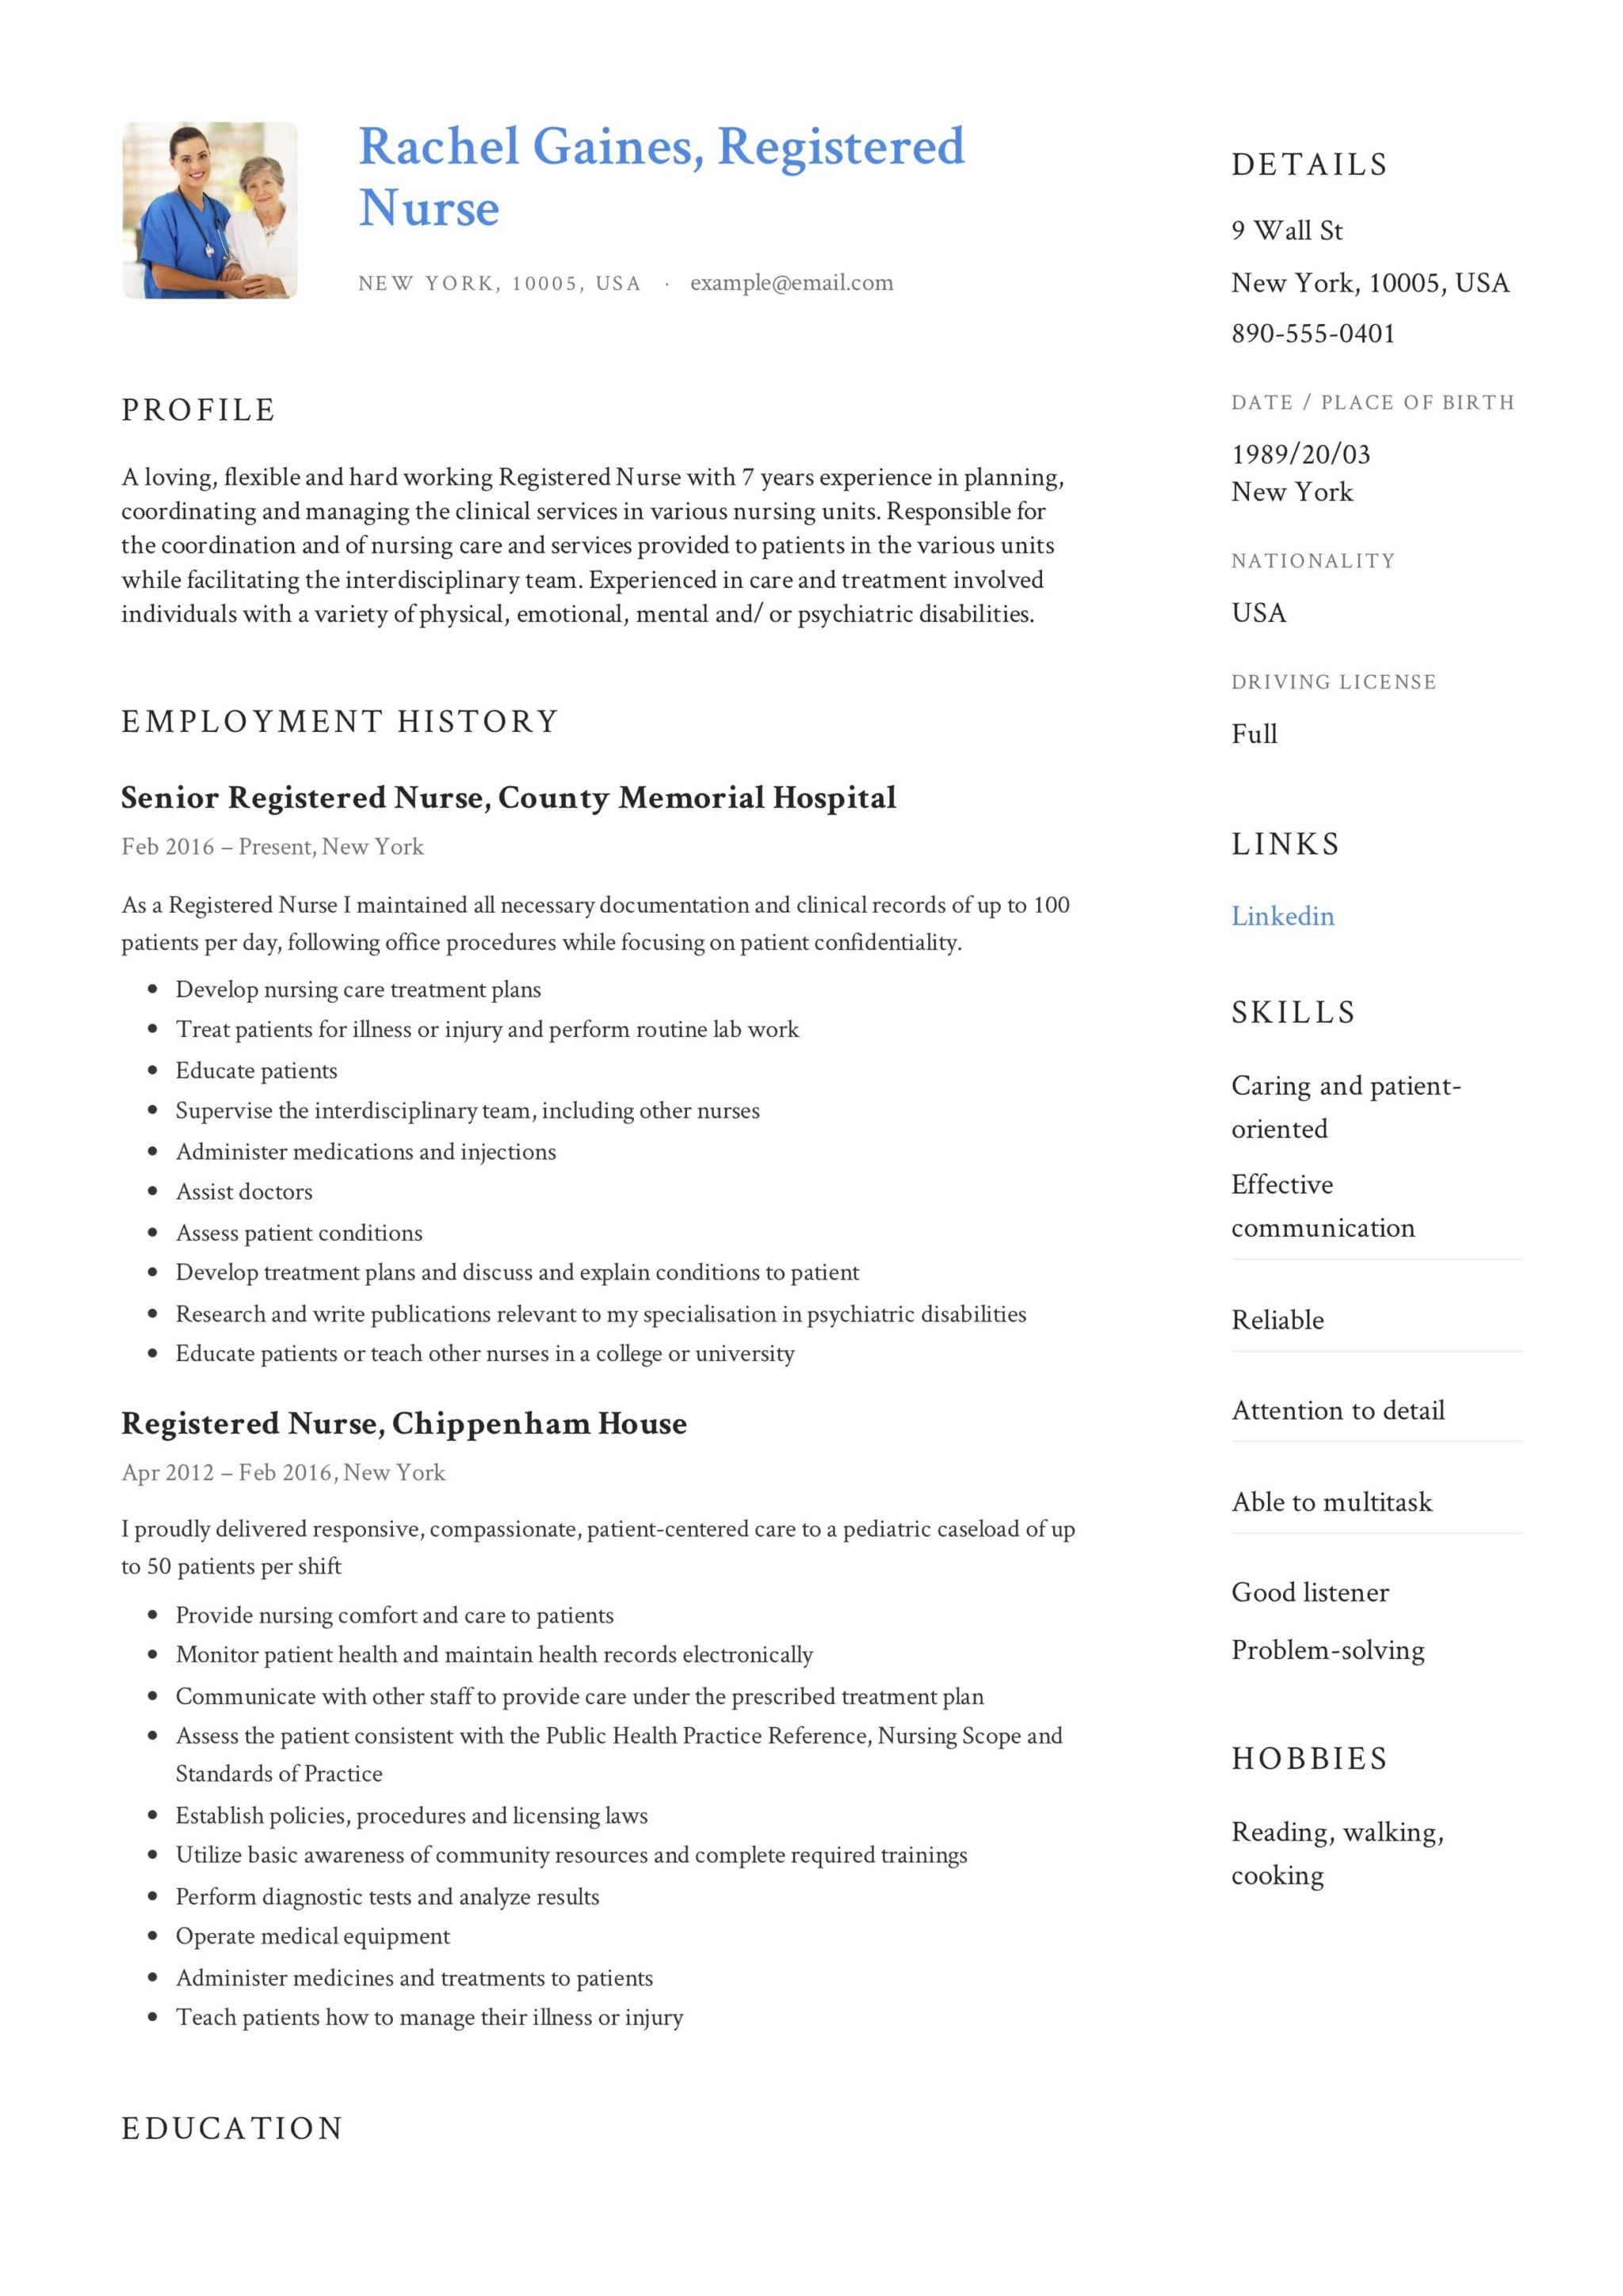 Registered Nurse Resume Sample & Writing Guide | +12 Samples ...